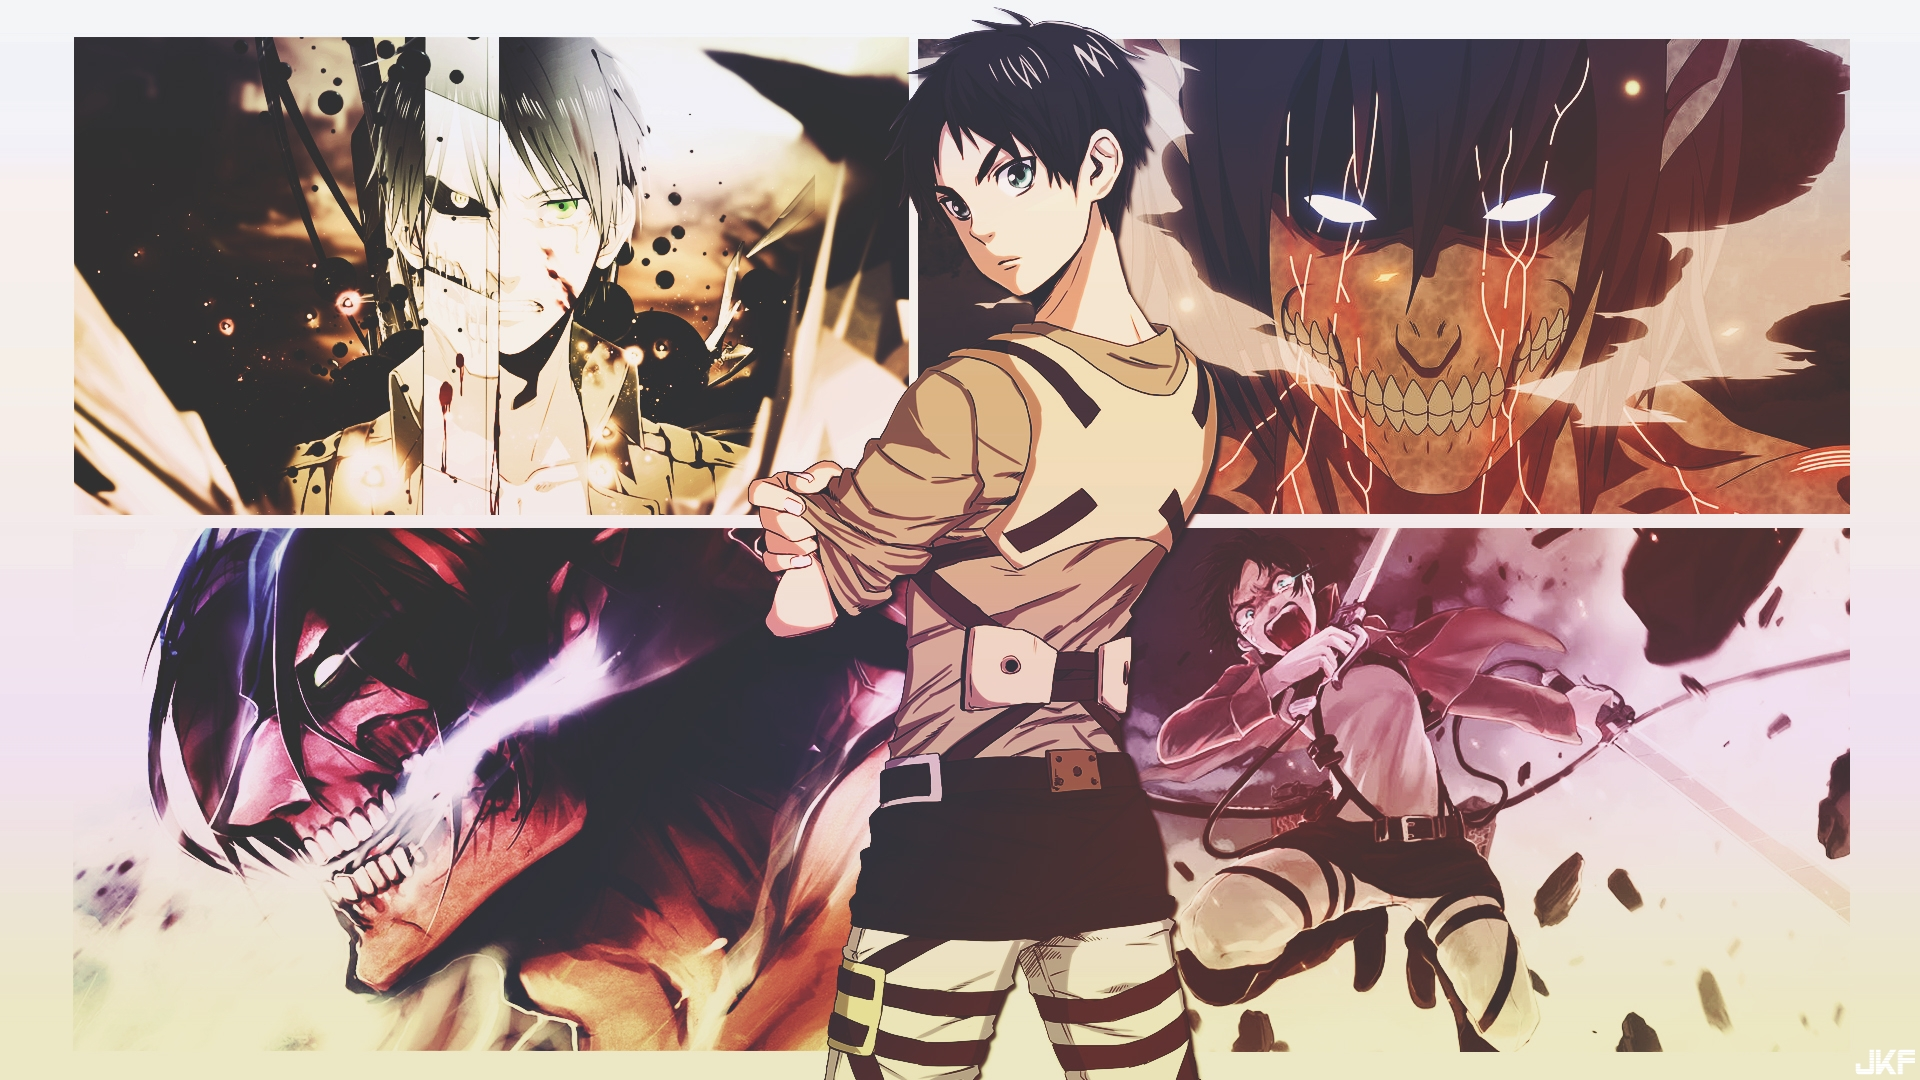 eren_wallpaper_by_dinocojv-d961a5n.jpg